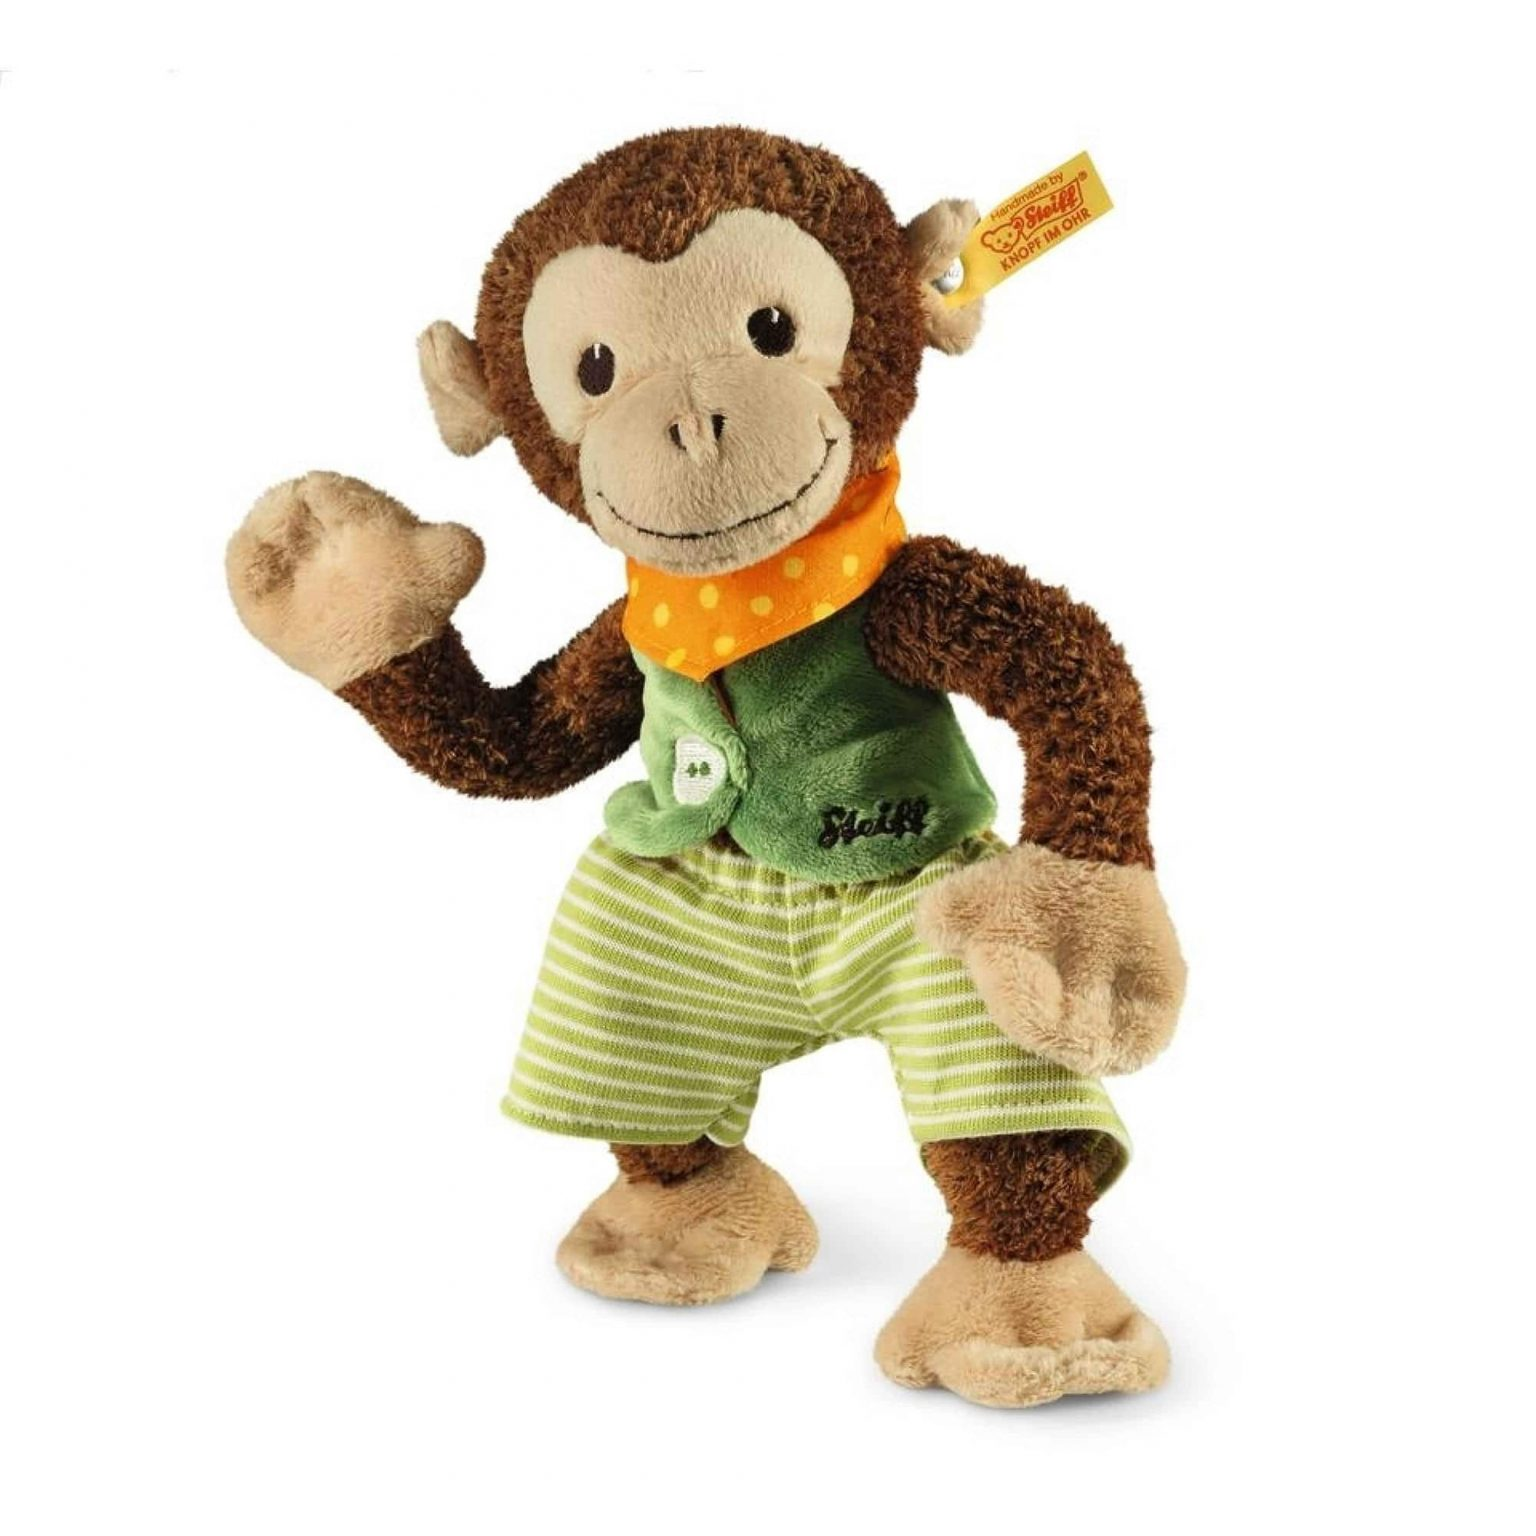 Jocko Monkey Steiff Teddy Bear Mary Shortle